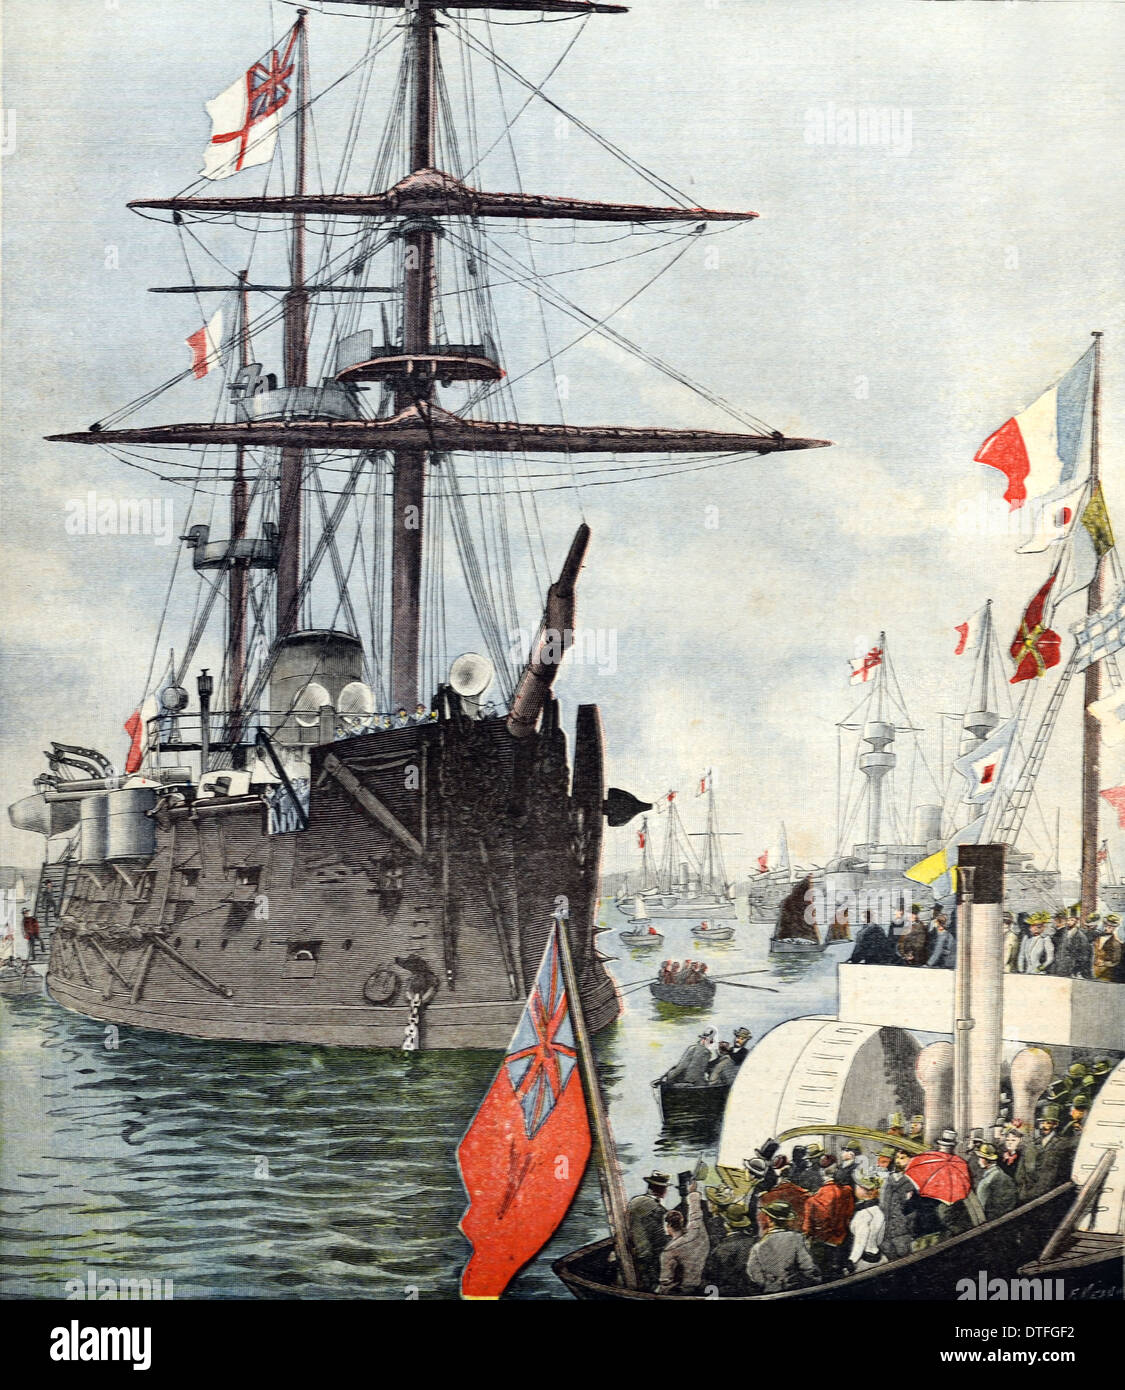 French Navy of Fleet in Portsmouth Harbor Harbour or Port England 1891 - Stock Image